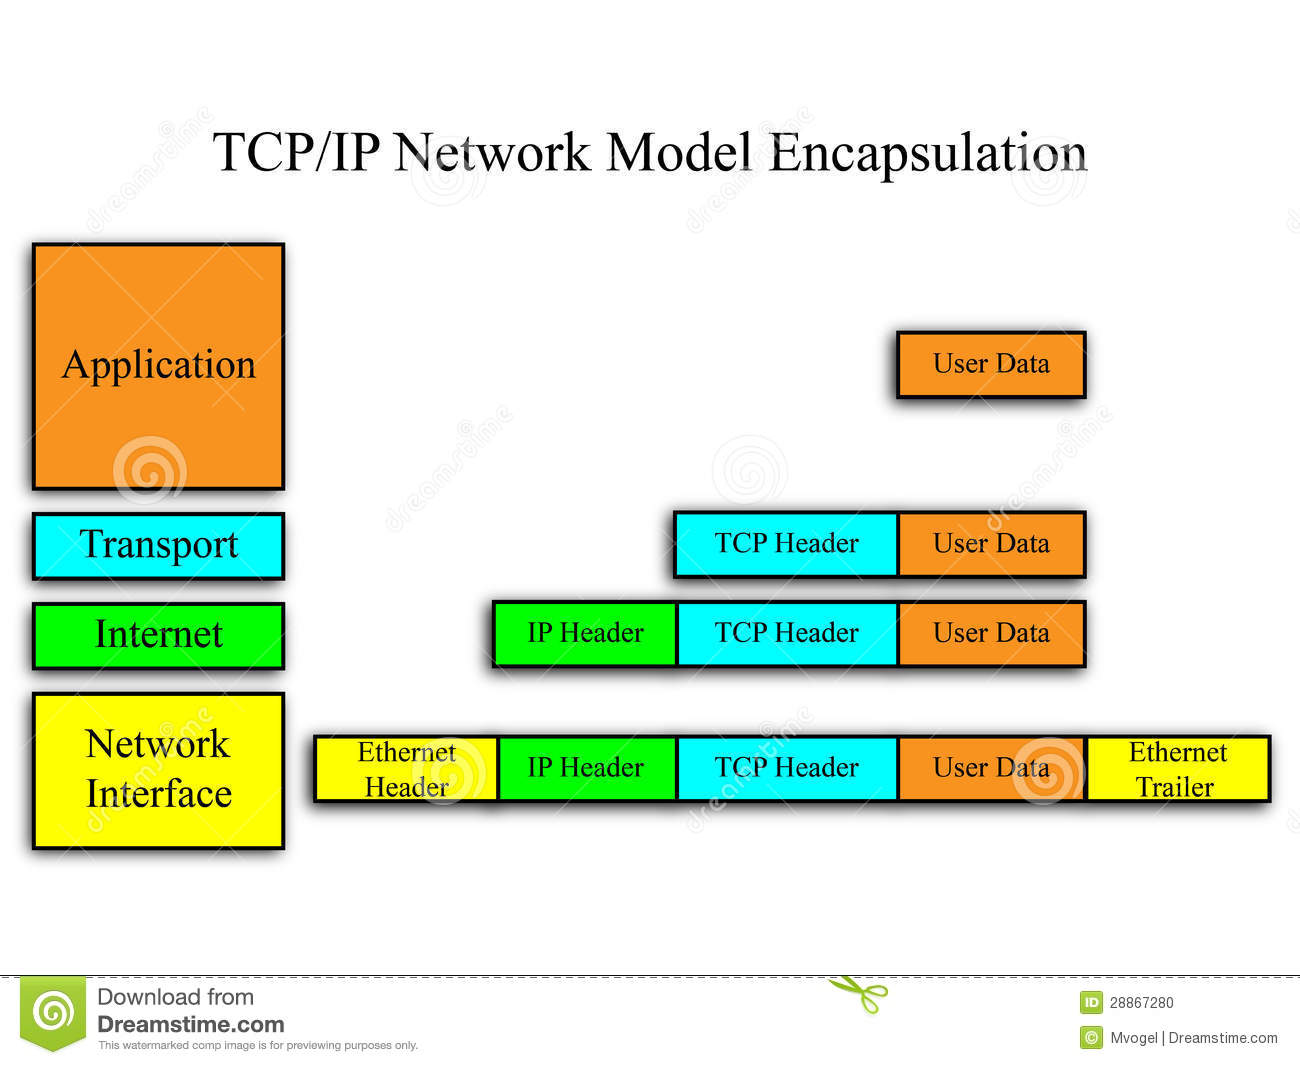 Modelo de red del TCP/IP